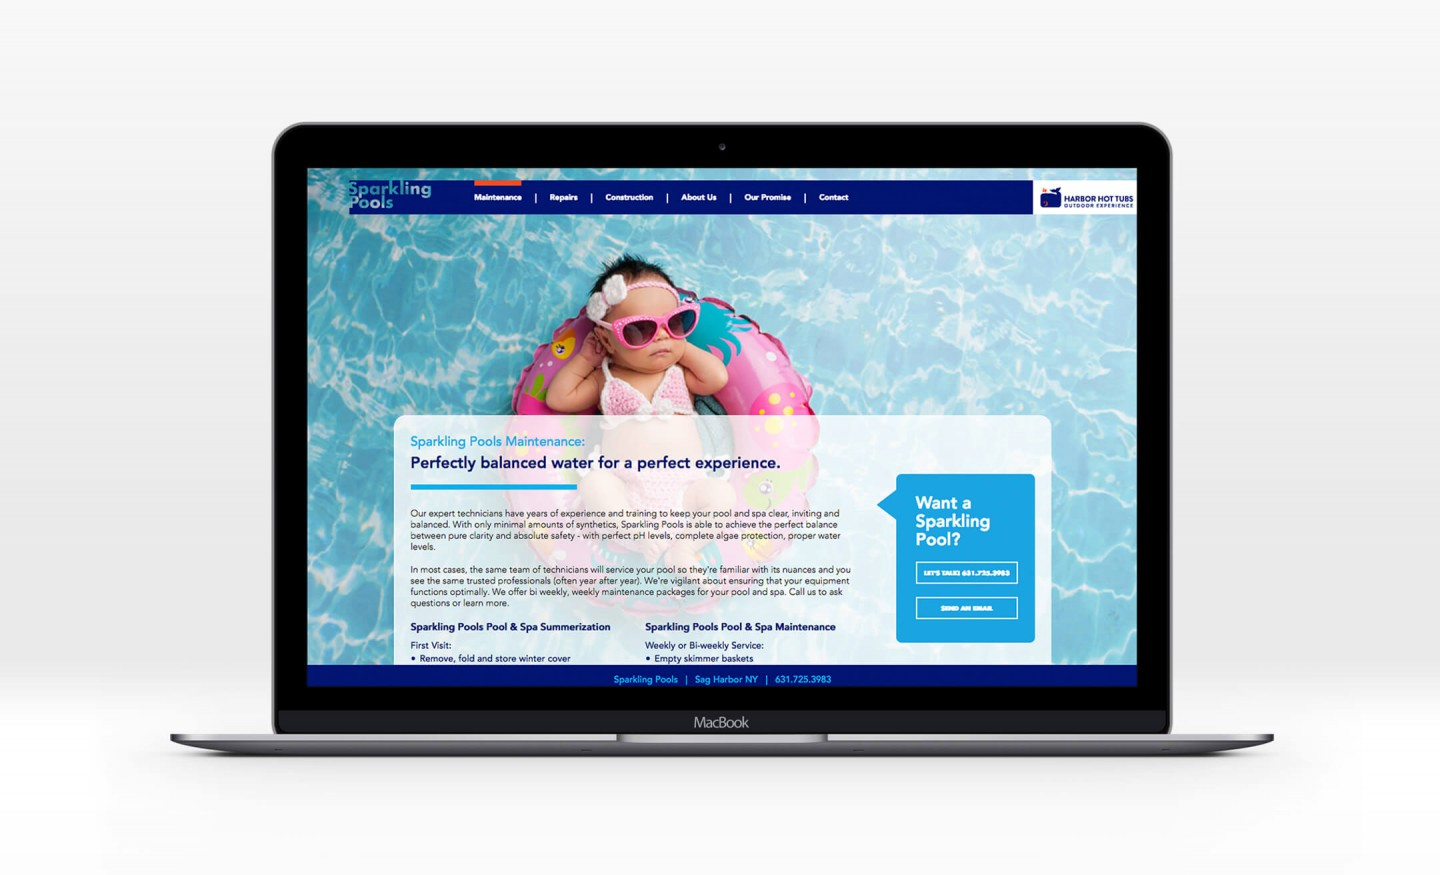 Sparkling Pools website